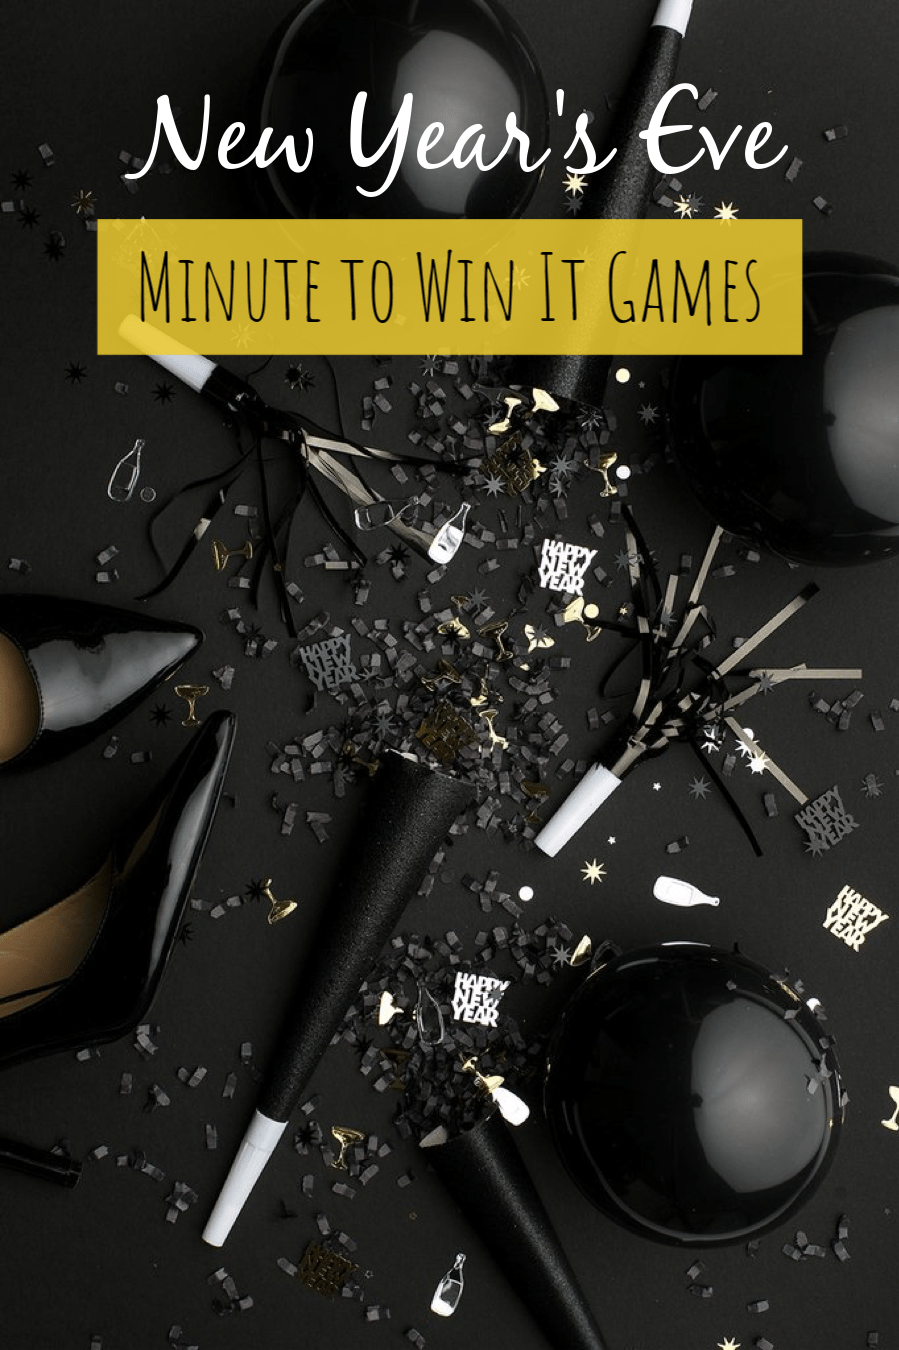 New Year's Eve Minute to Win It Games to play with the whole family.